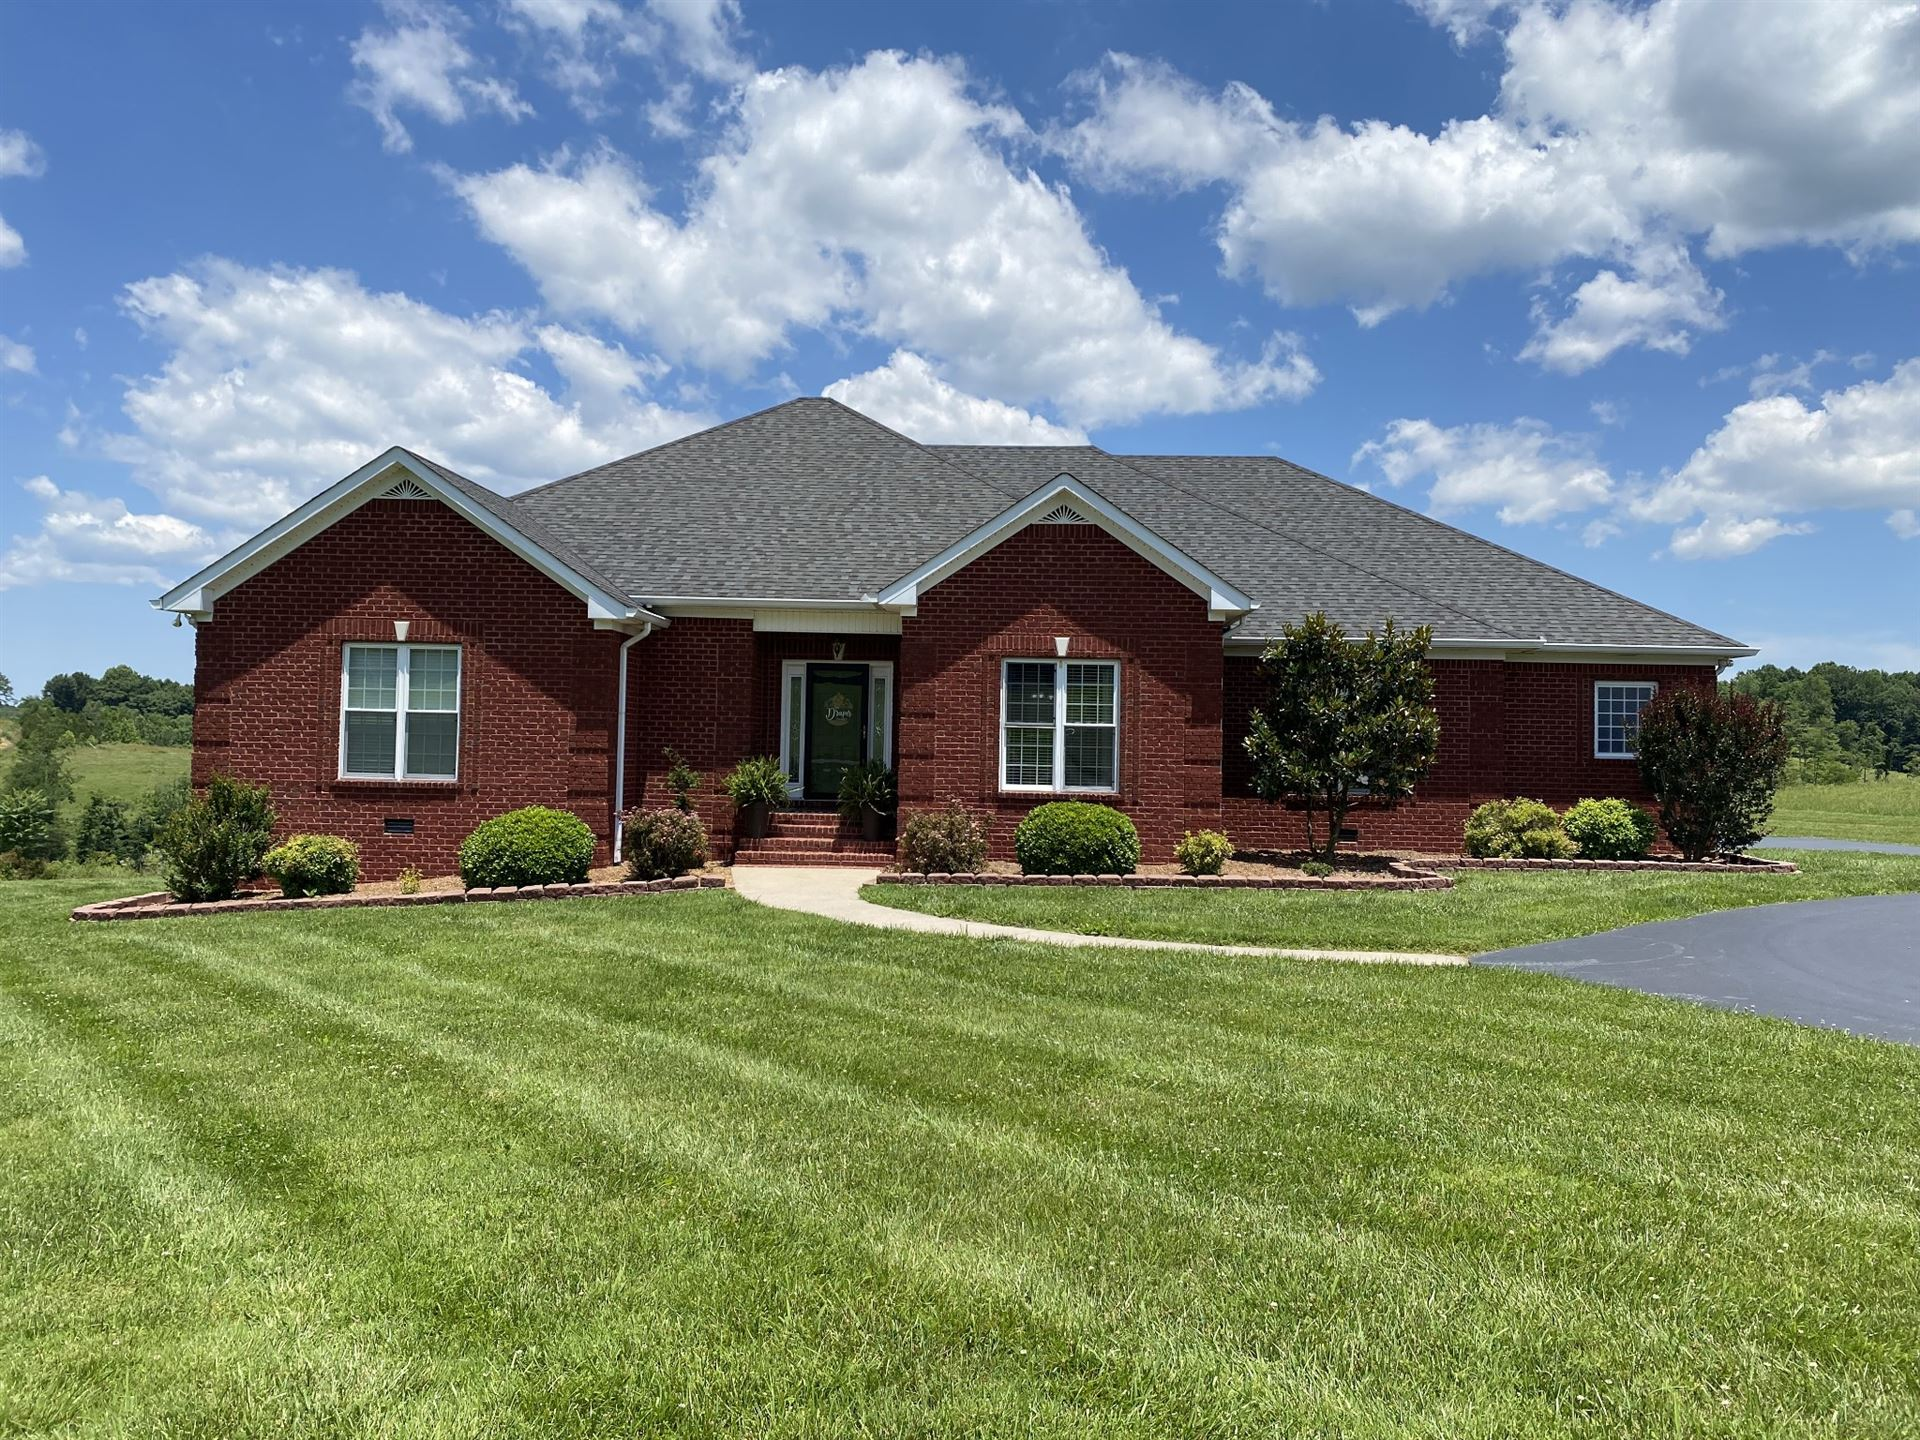 Photo of 201 Watercrest Ln, Red Boiling Springs, TN 37150 (MLS # 2263295)